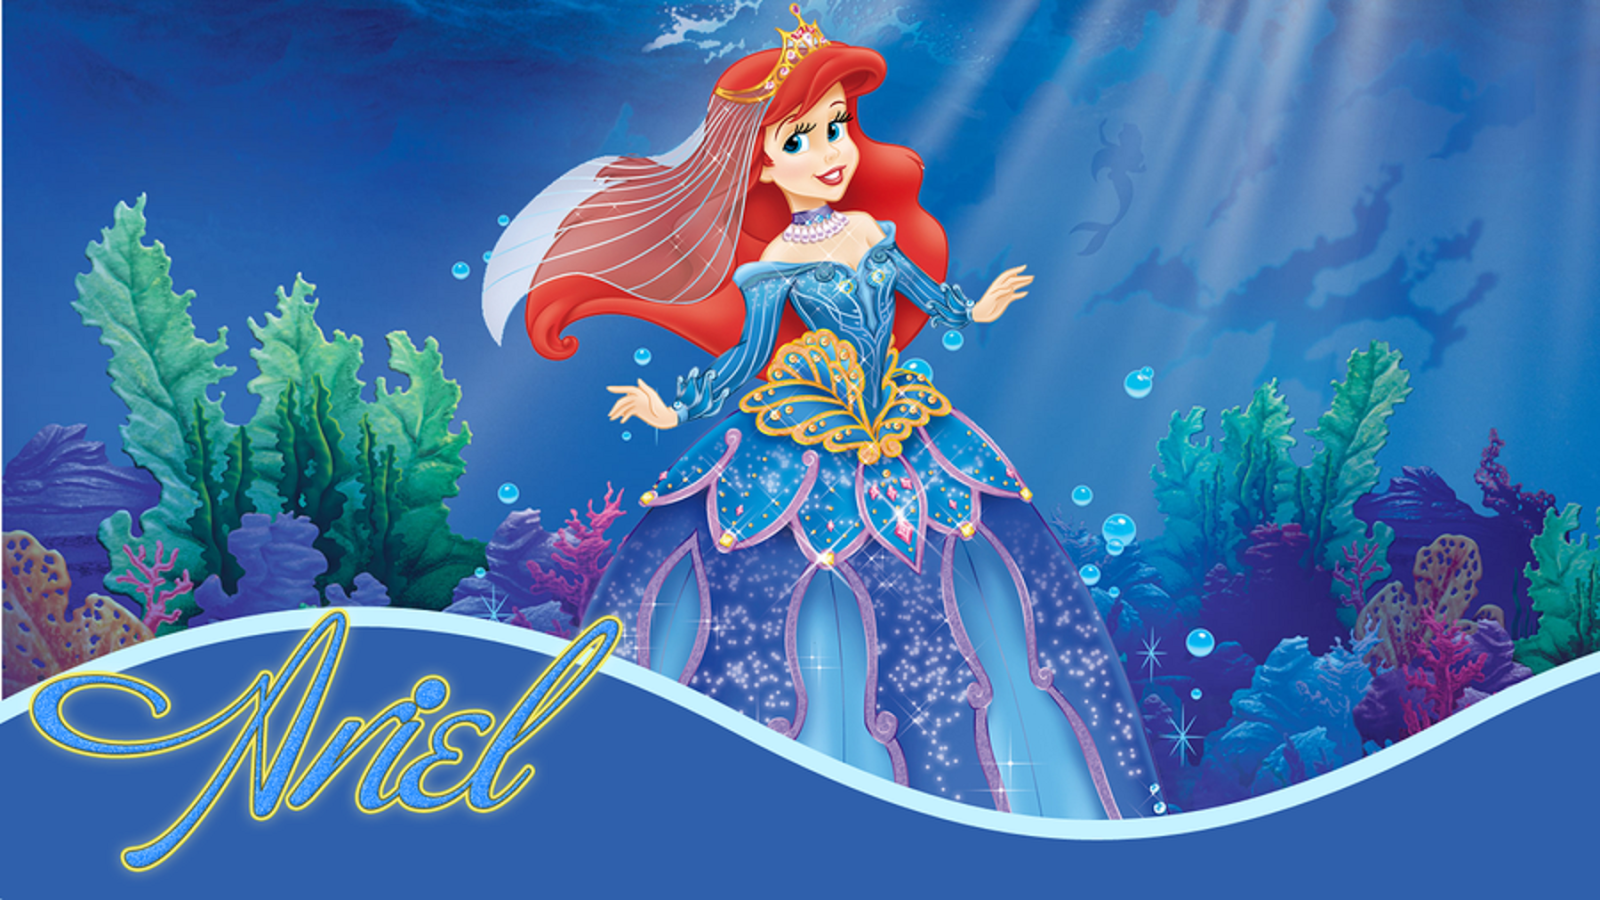 Desktop Backgrounds: Ariel, by Jone Stephens, 1600x900